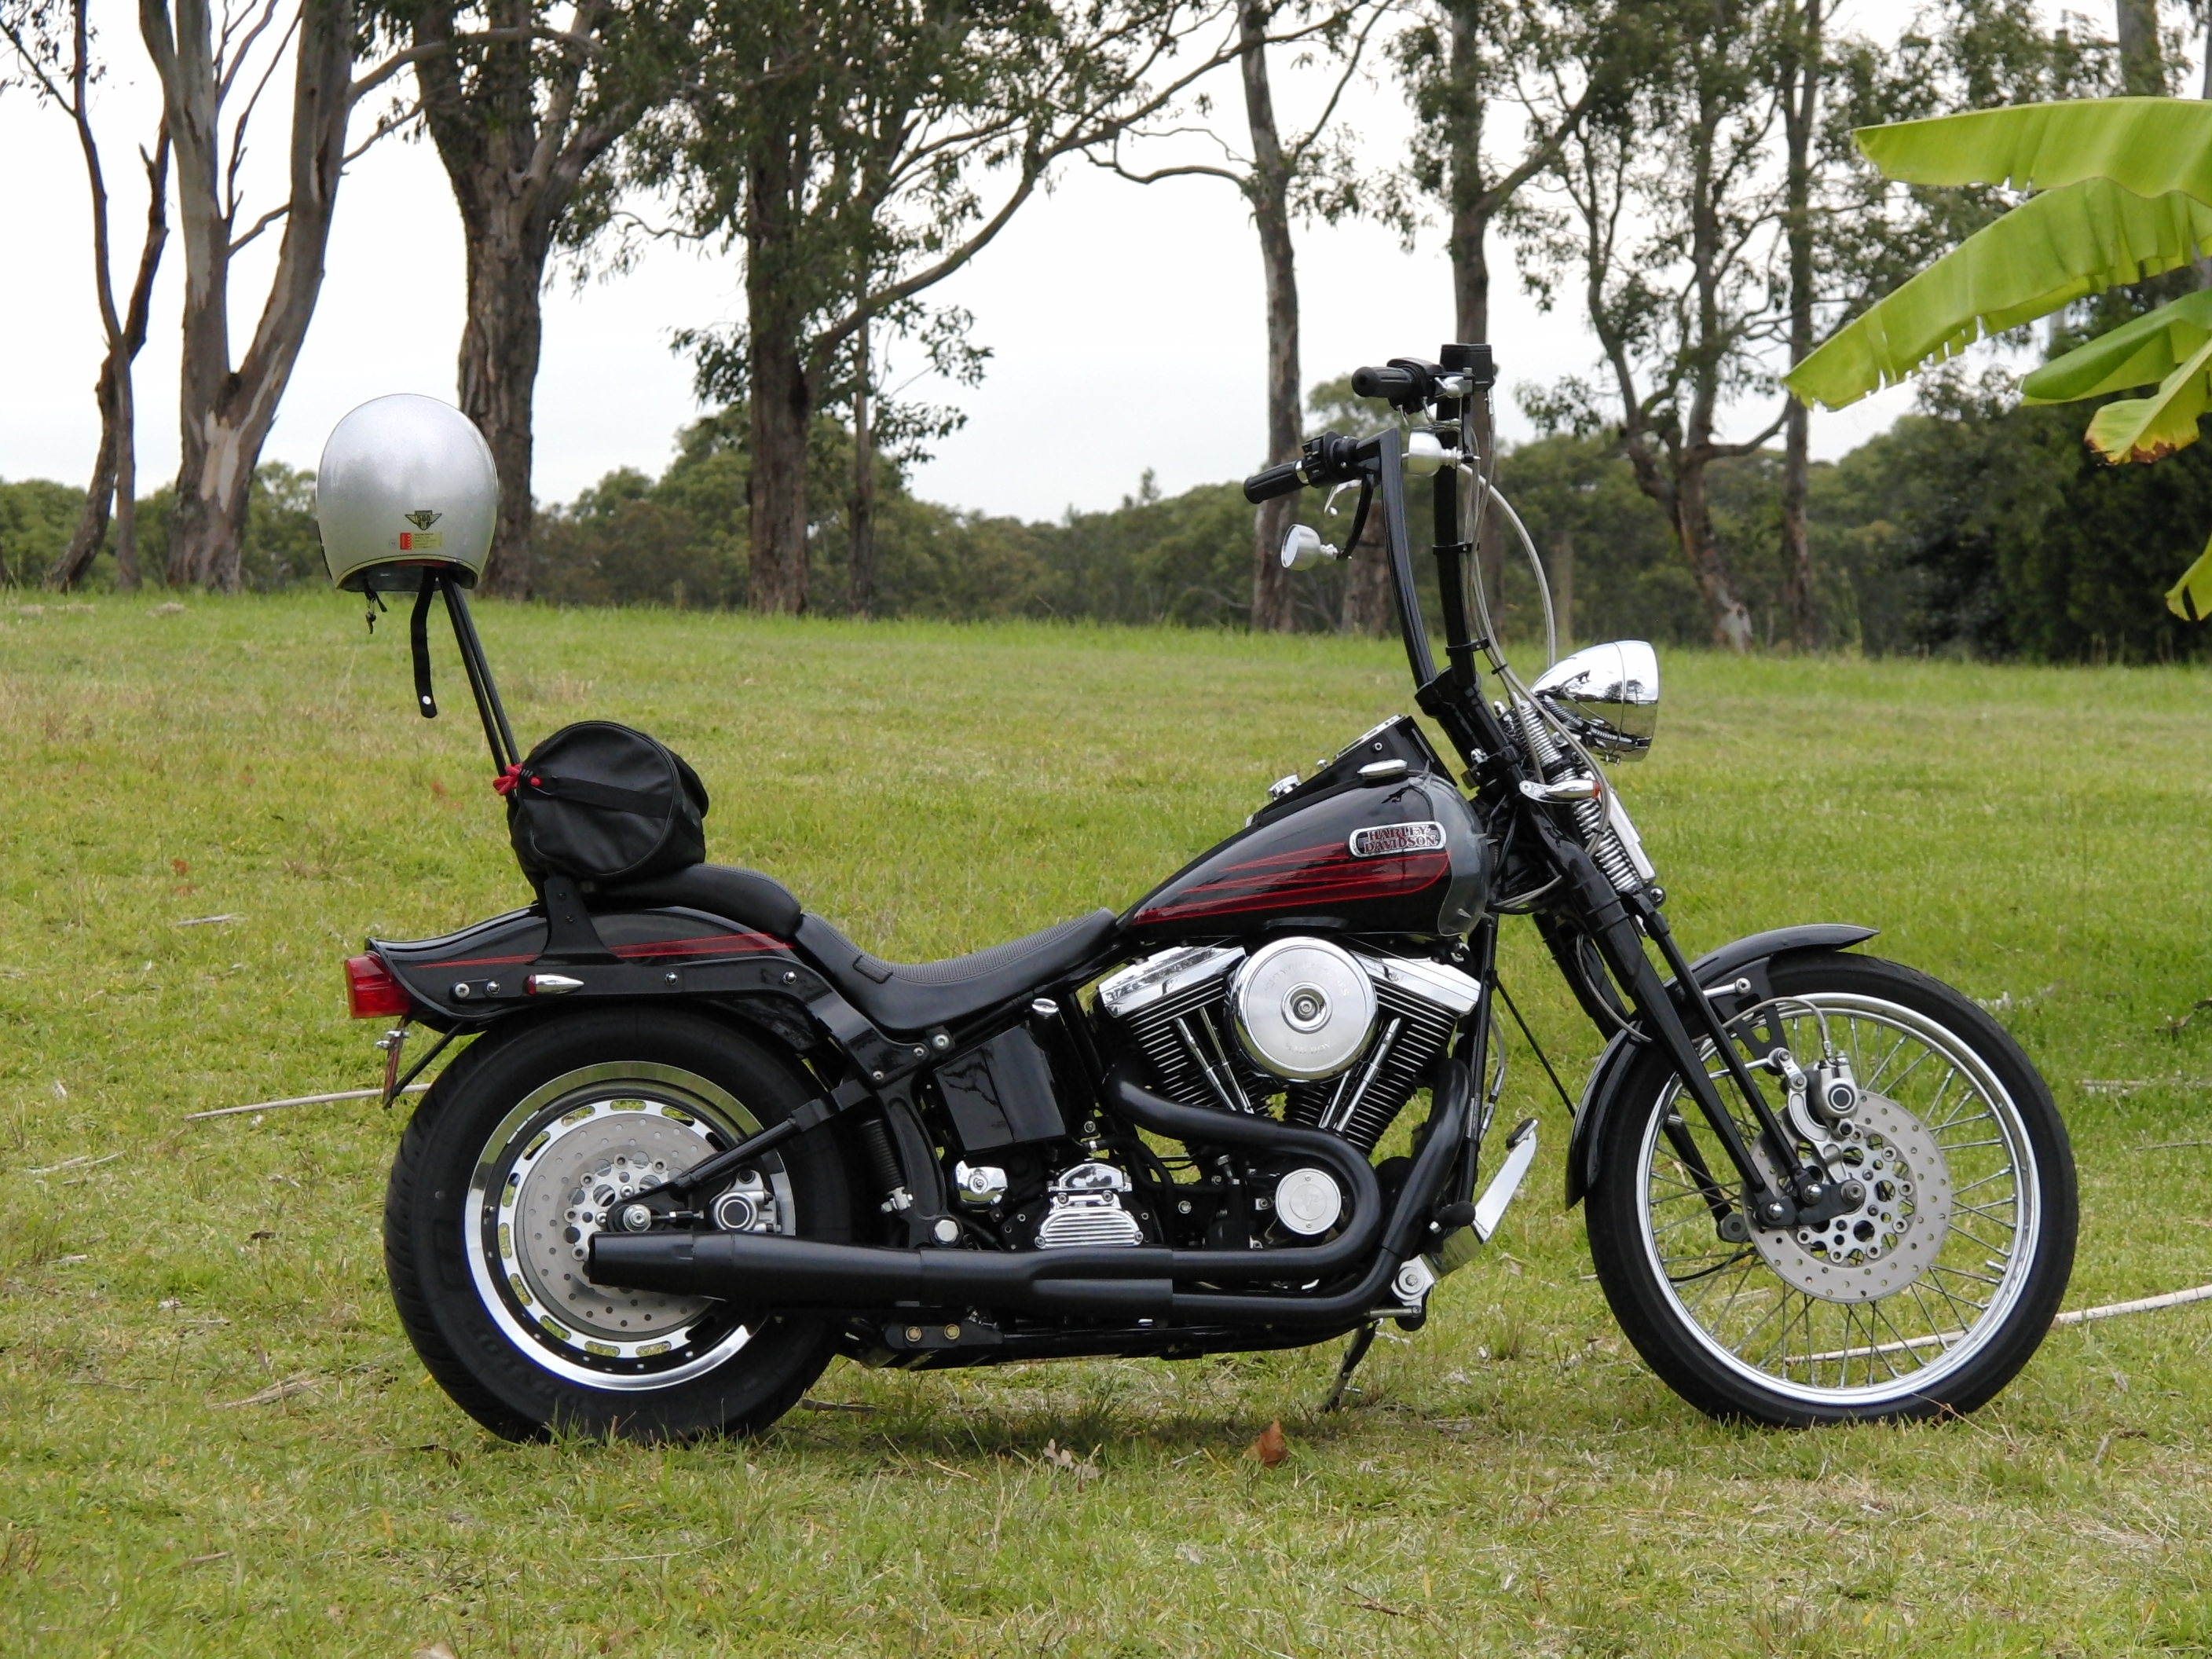 Harley-Davidson FXSTSB Springer Softail Bad Boy 1997 pics #16787